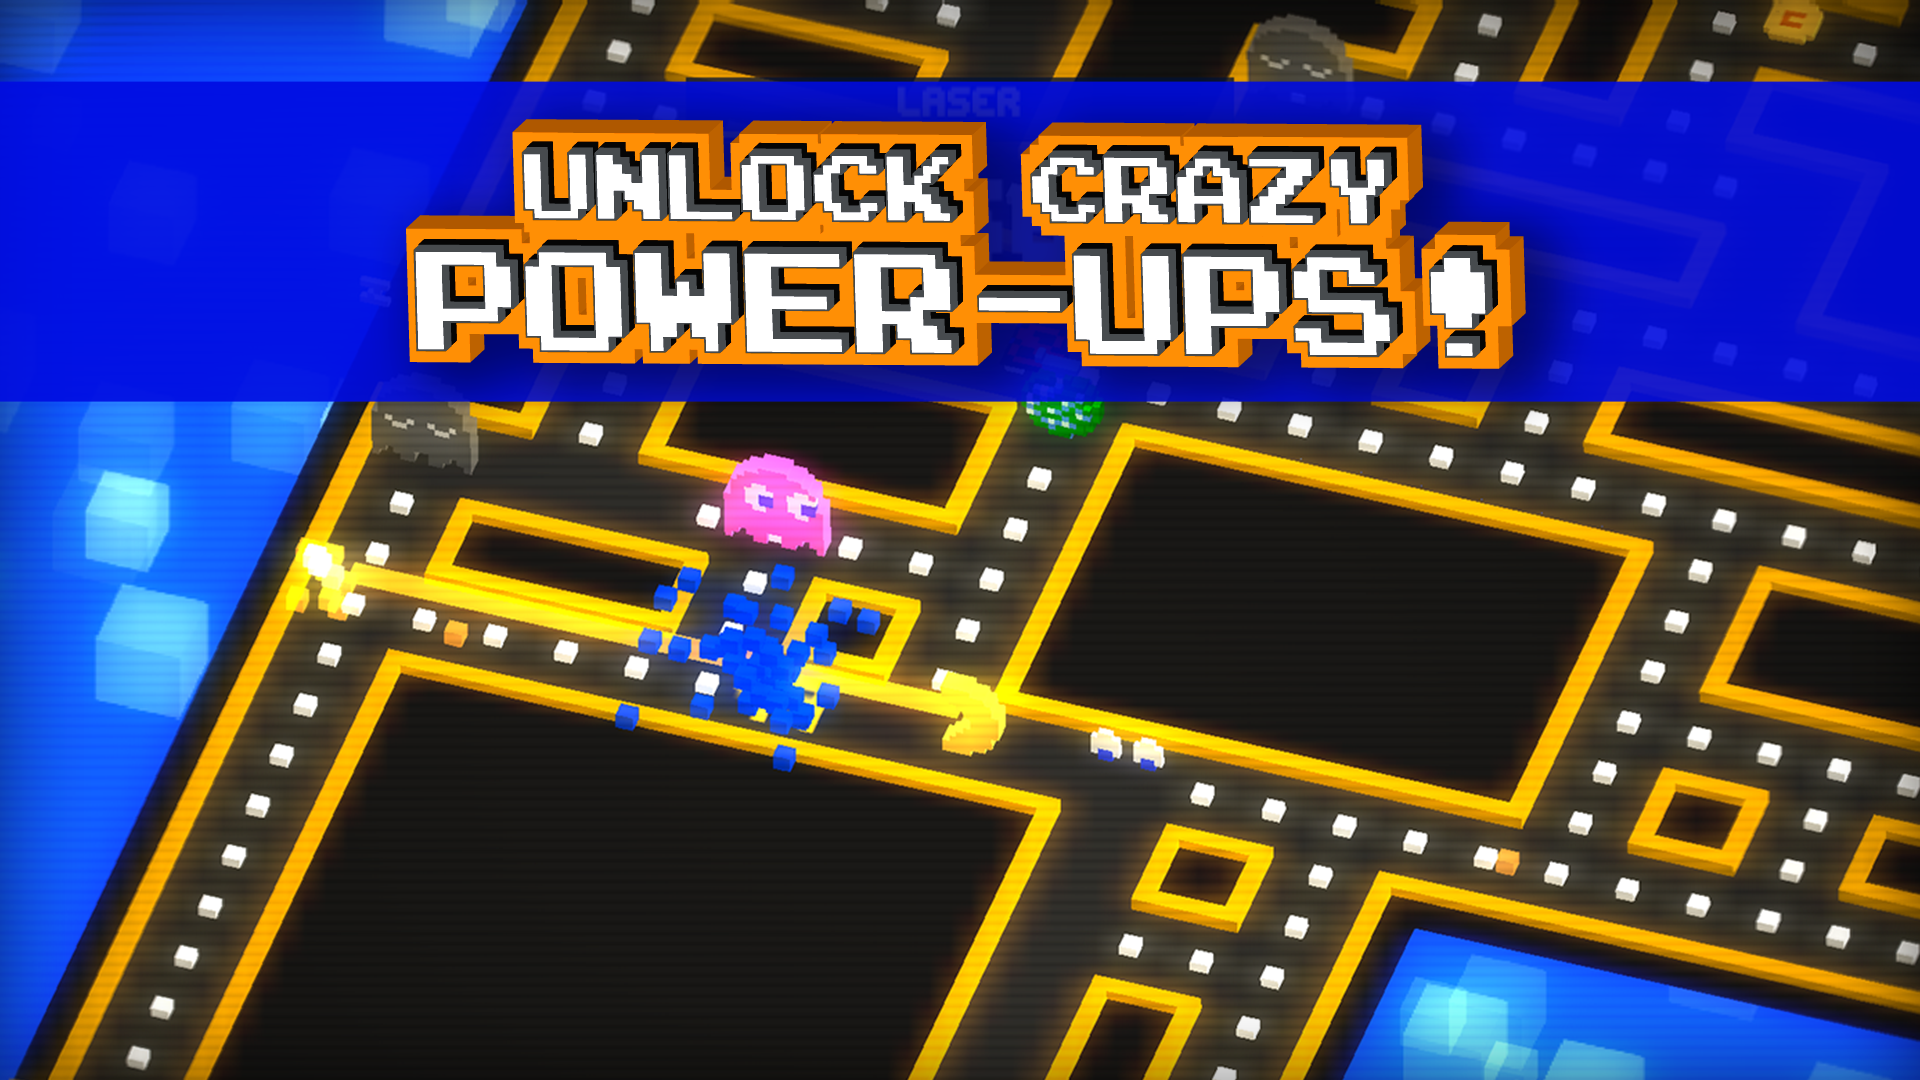 PAC-MAN 256 Games Free Download For PC,Windows 7,8,10,XP